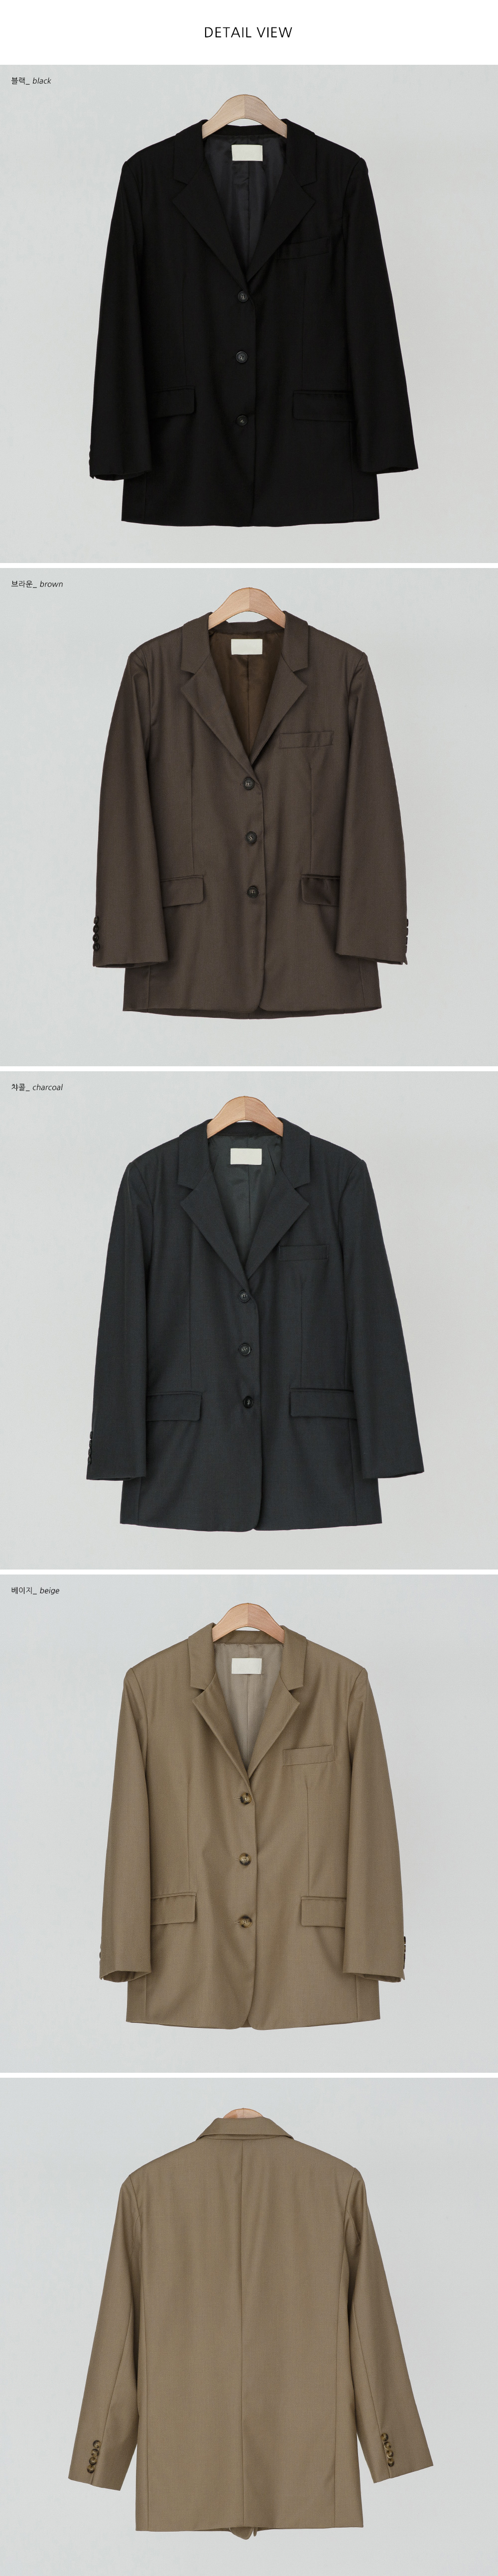 Daily Simple Classic Jacket